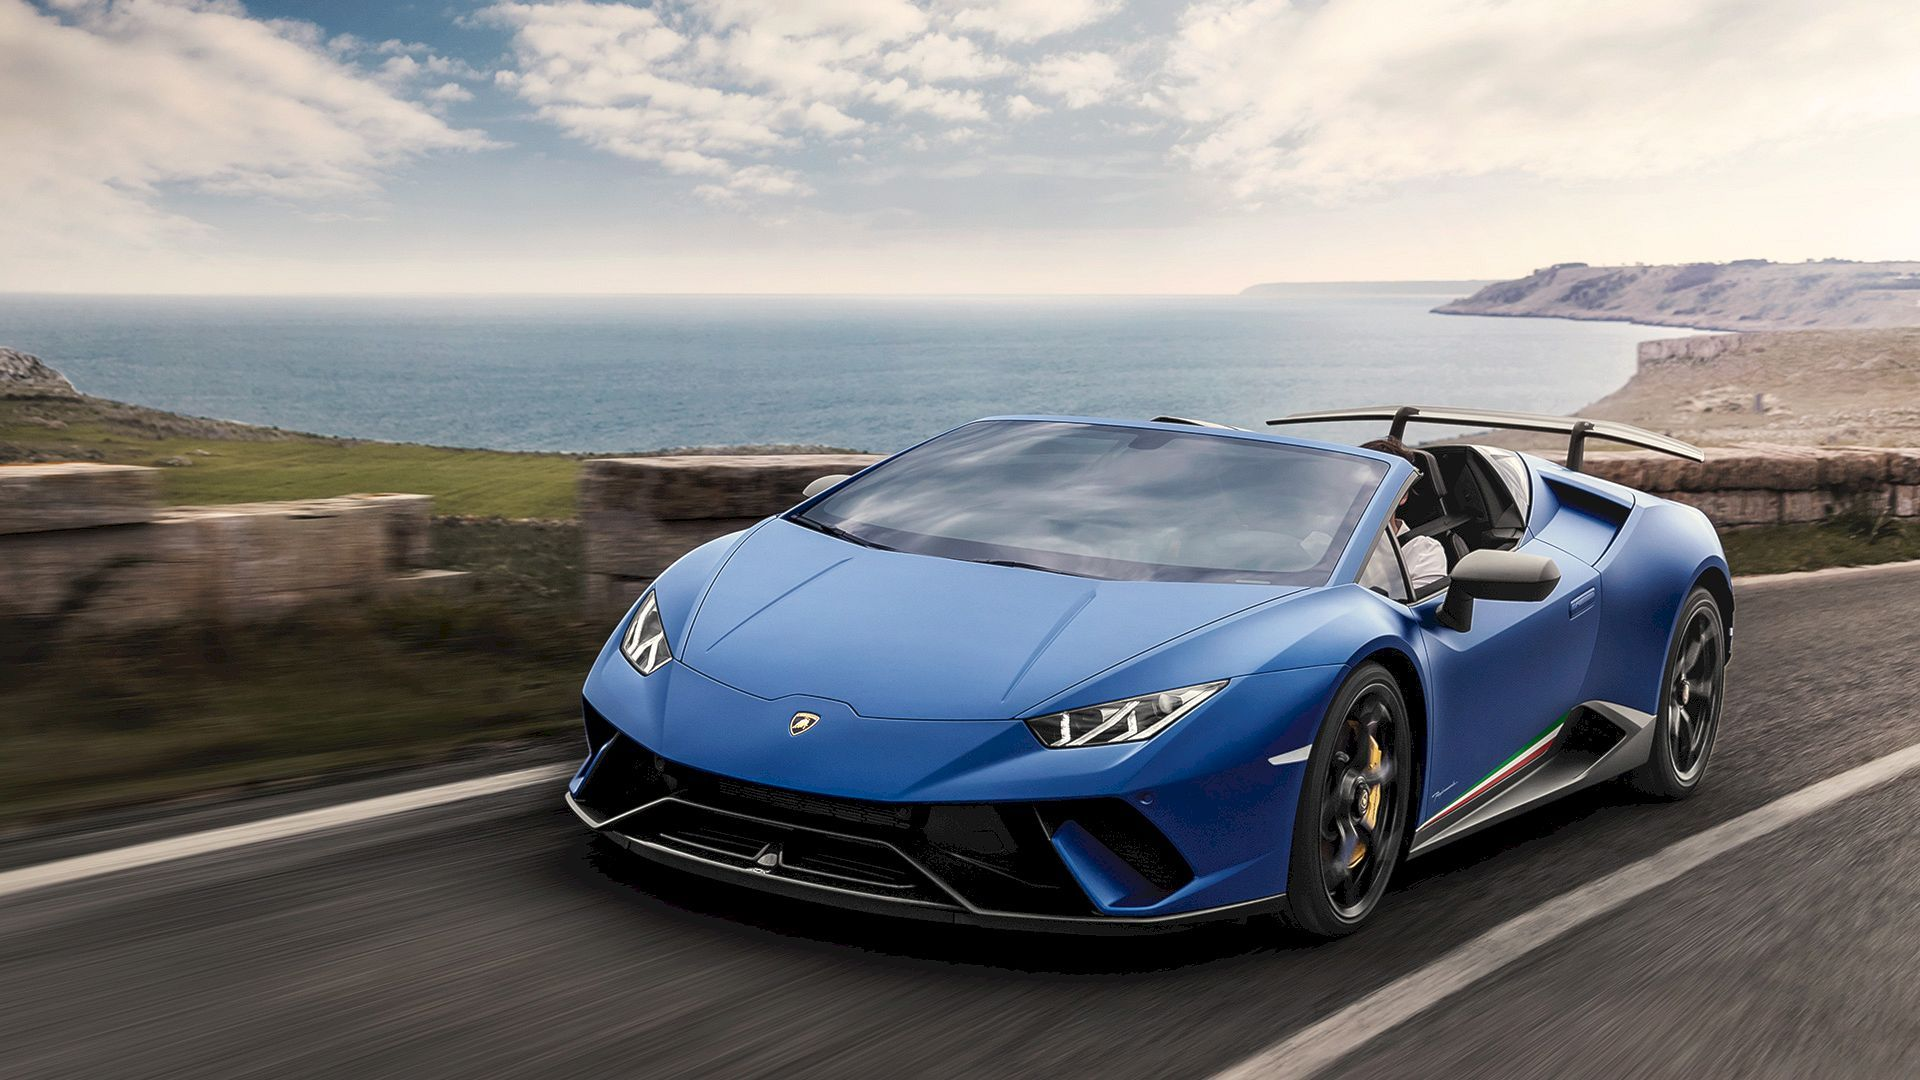 2018 Lamborghini Huracan Performante: The Perfect One that ...